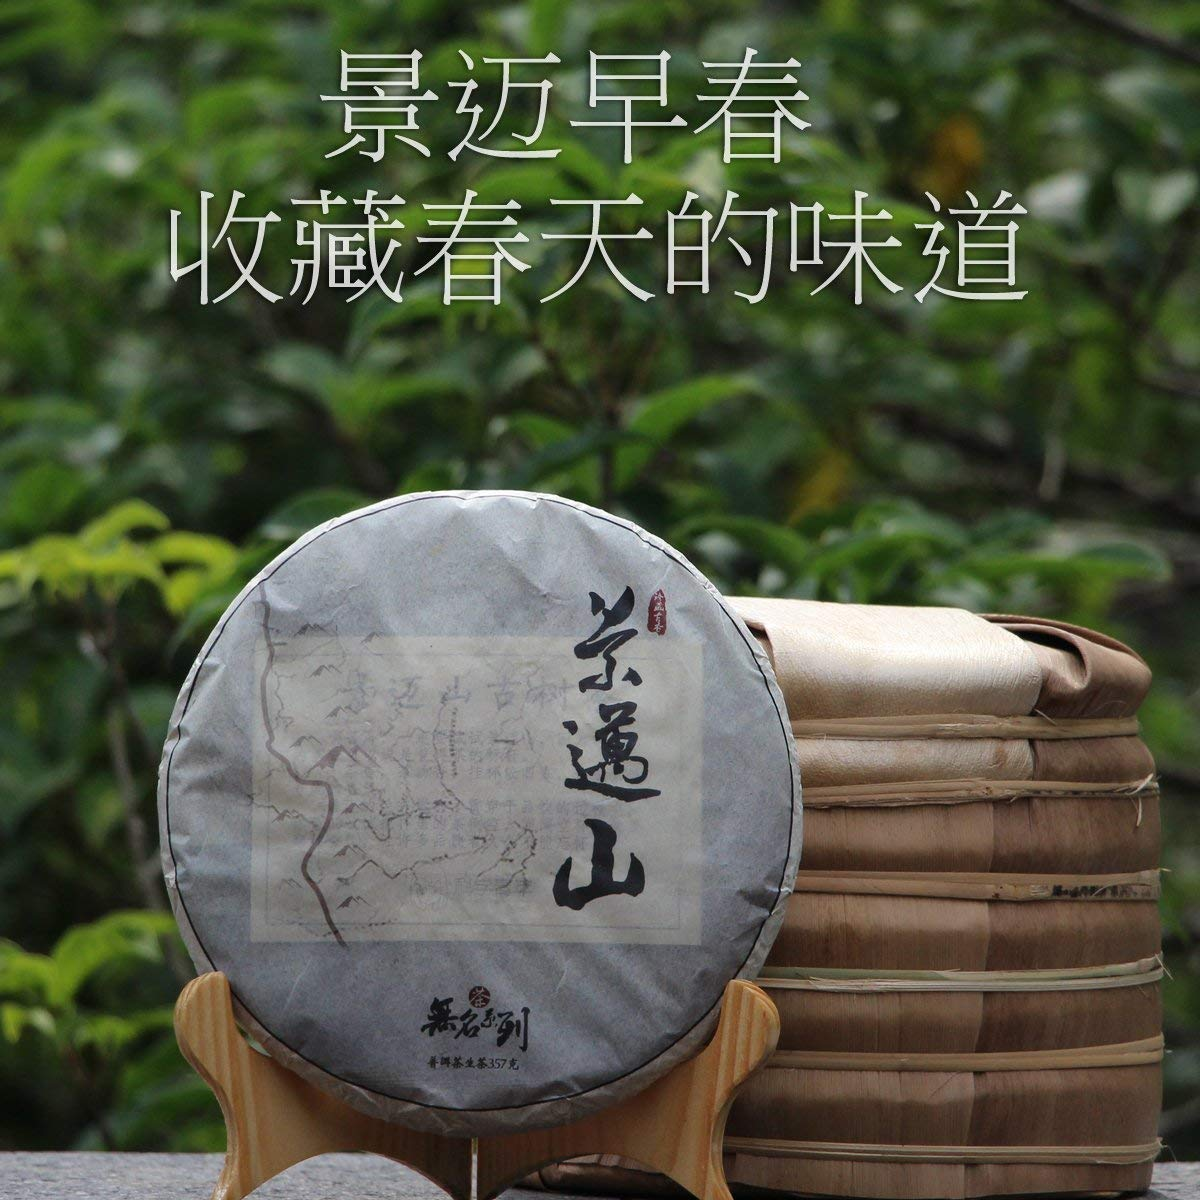 CHIY-GBC Ltd Chinese tasty snack, tea ceremony [1] in 2016 to buy 7 to send Jing maishan Pu'er Tea EXOBASIDIUM Pu'er Tea Youth Science Students